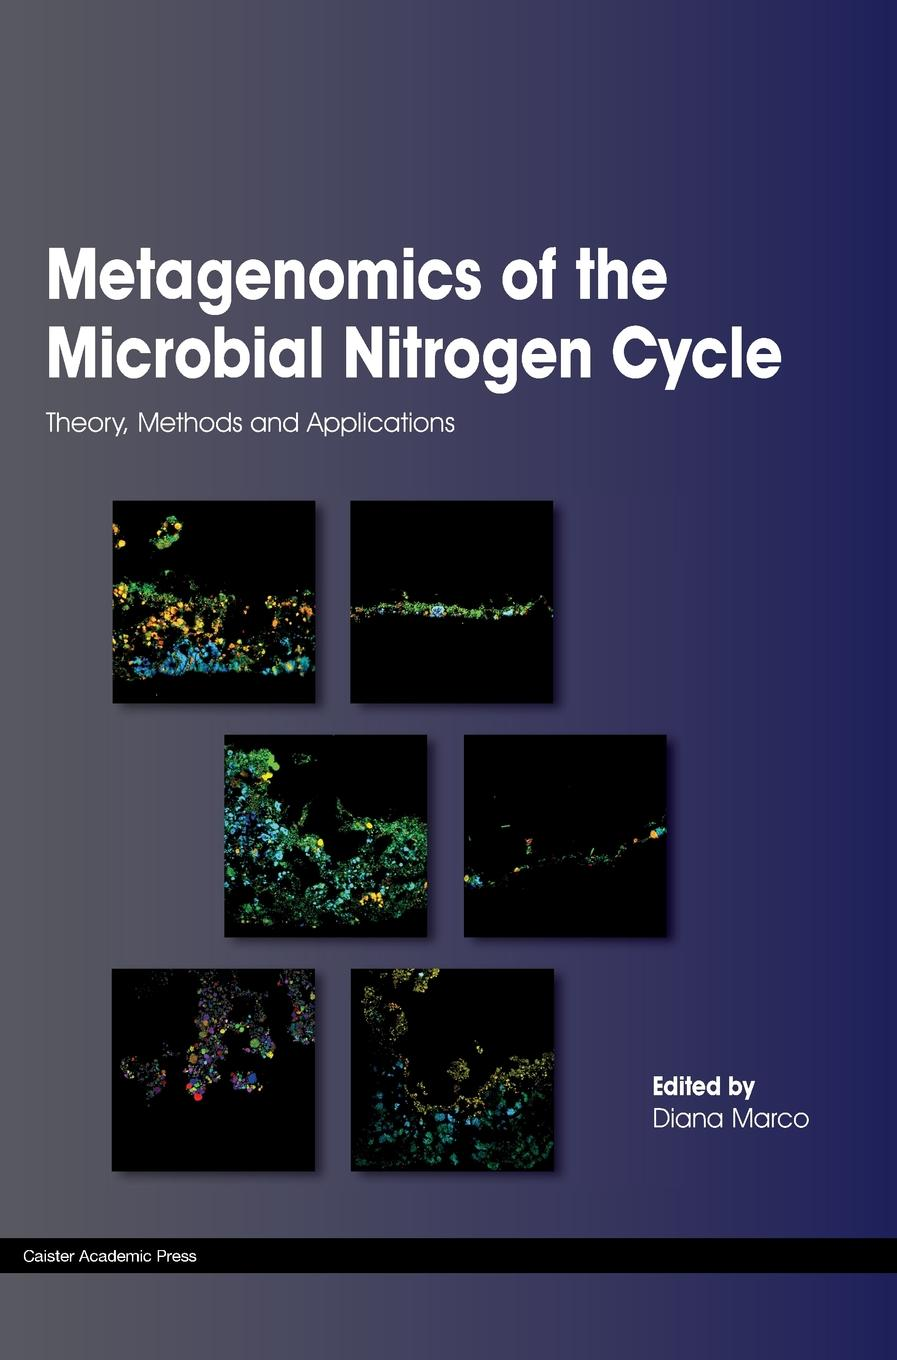 Microbiology books caister academic press metagenomics of the microbial nitrogen cycle theory methods and applications fandeluxe